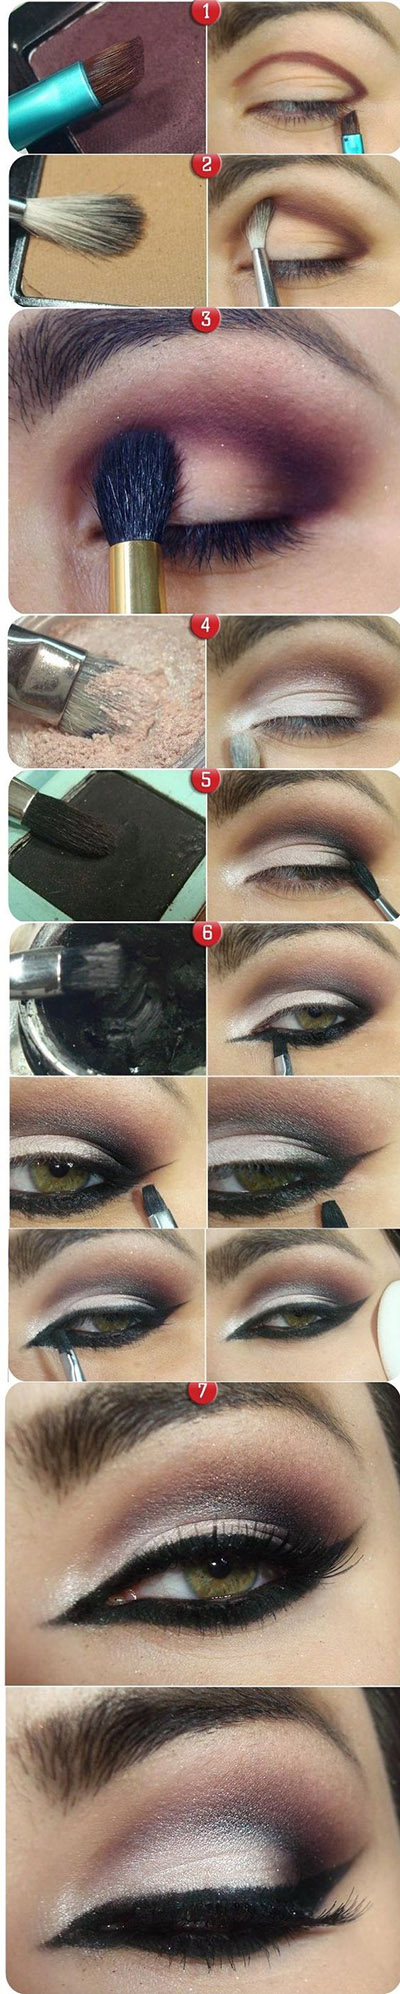 4 Egyptian Makeup Tutorial a33fc4eb74